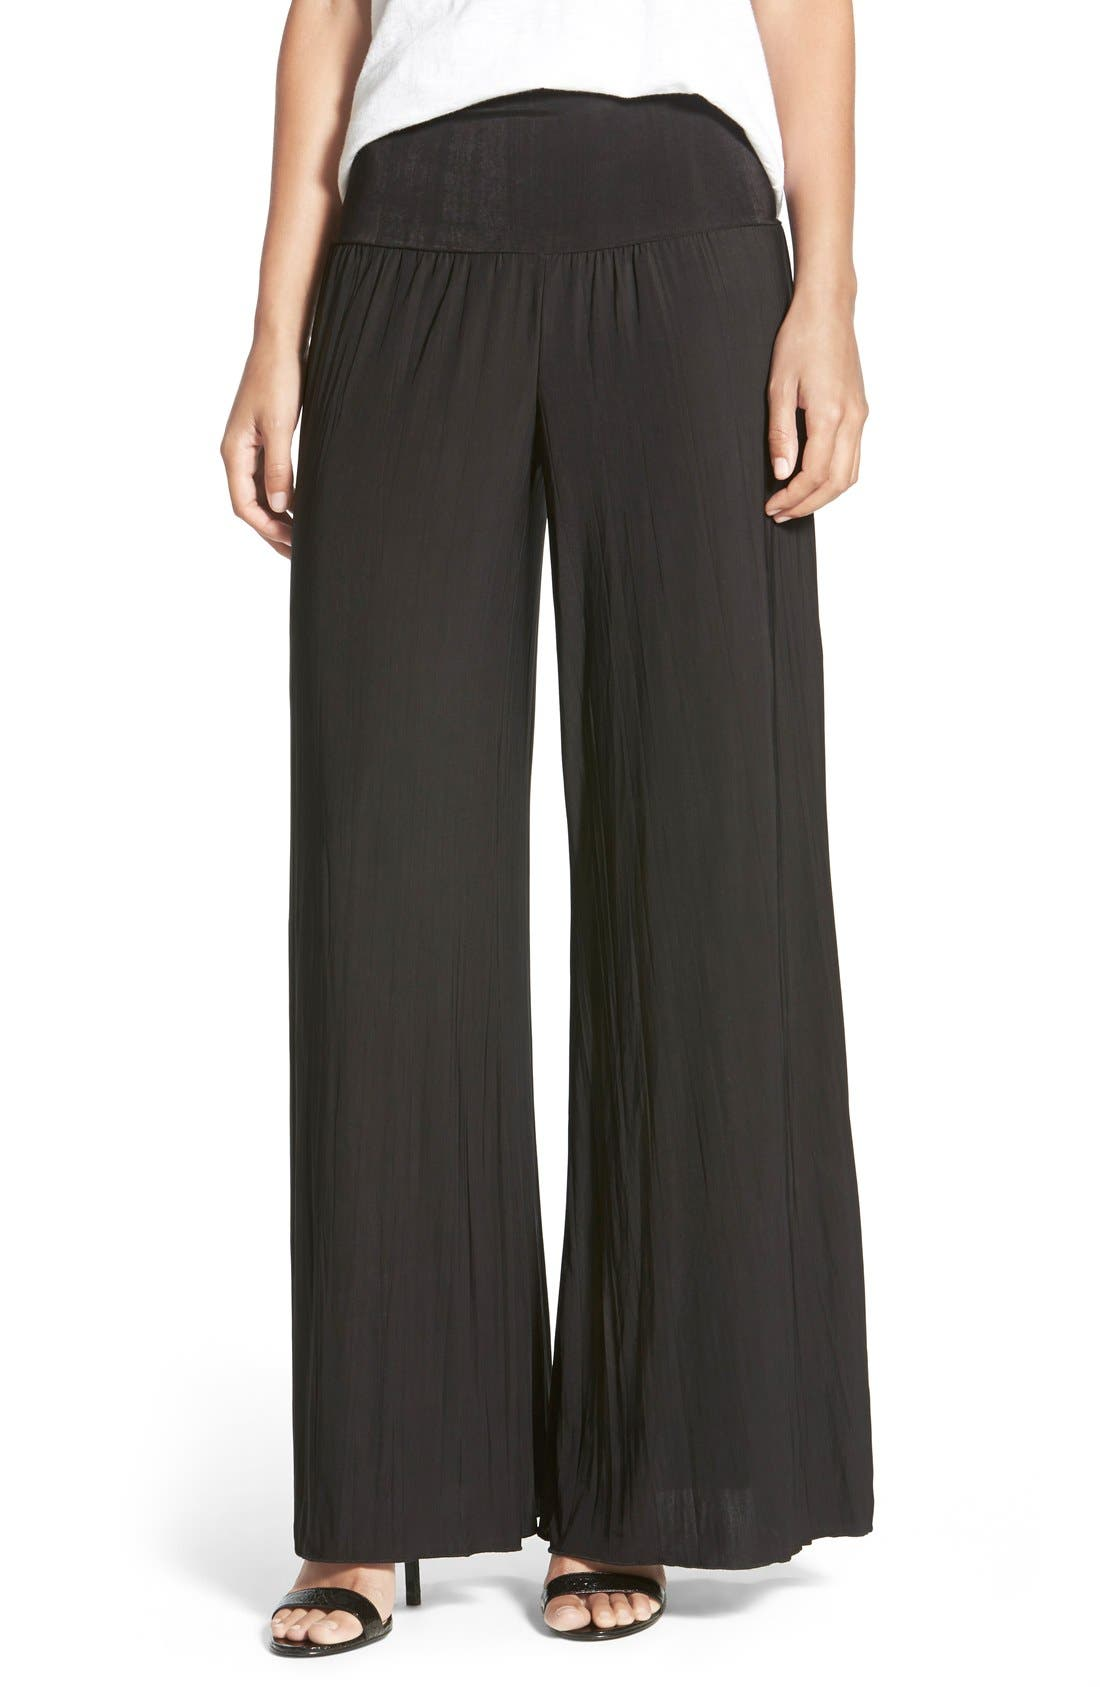 NIC+ZOE 'Feel Good' Foldover Waist Textured Knit Pants